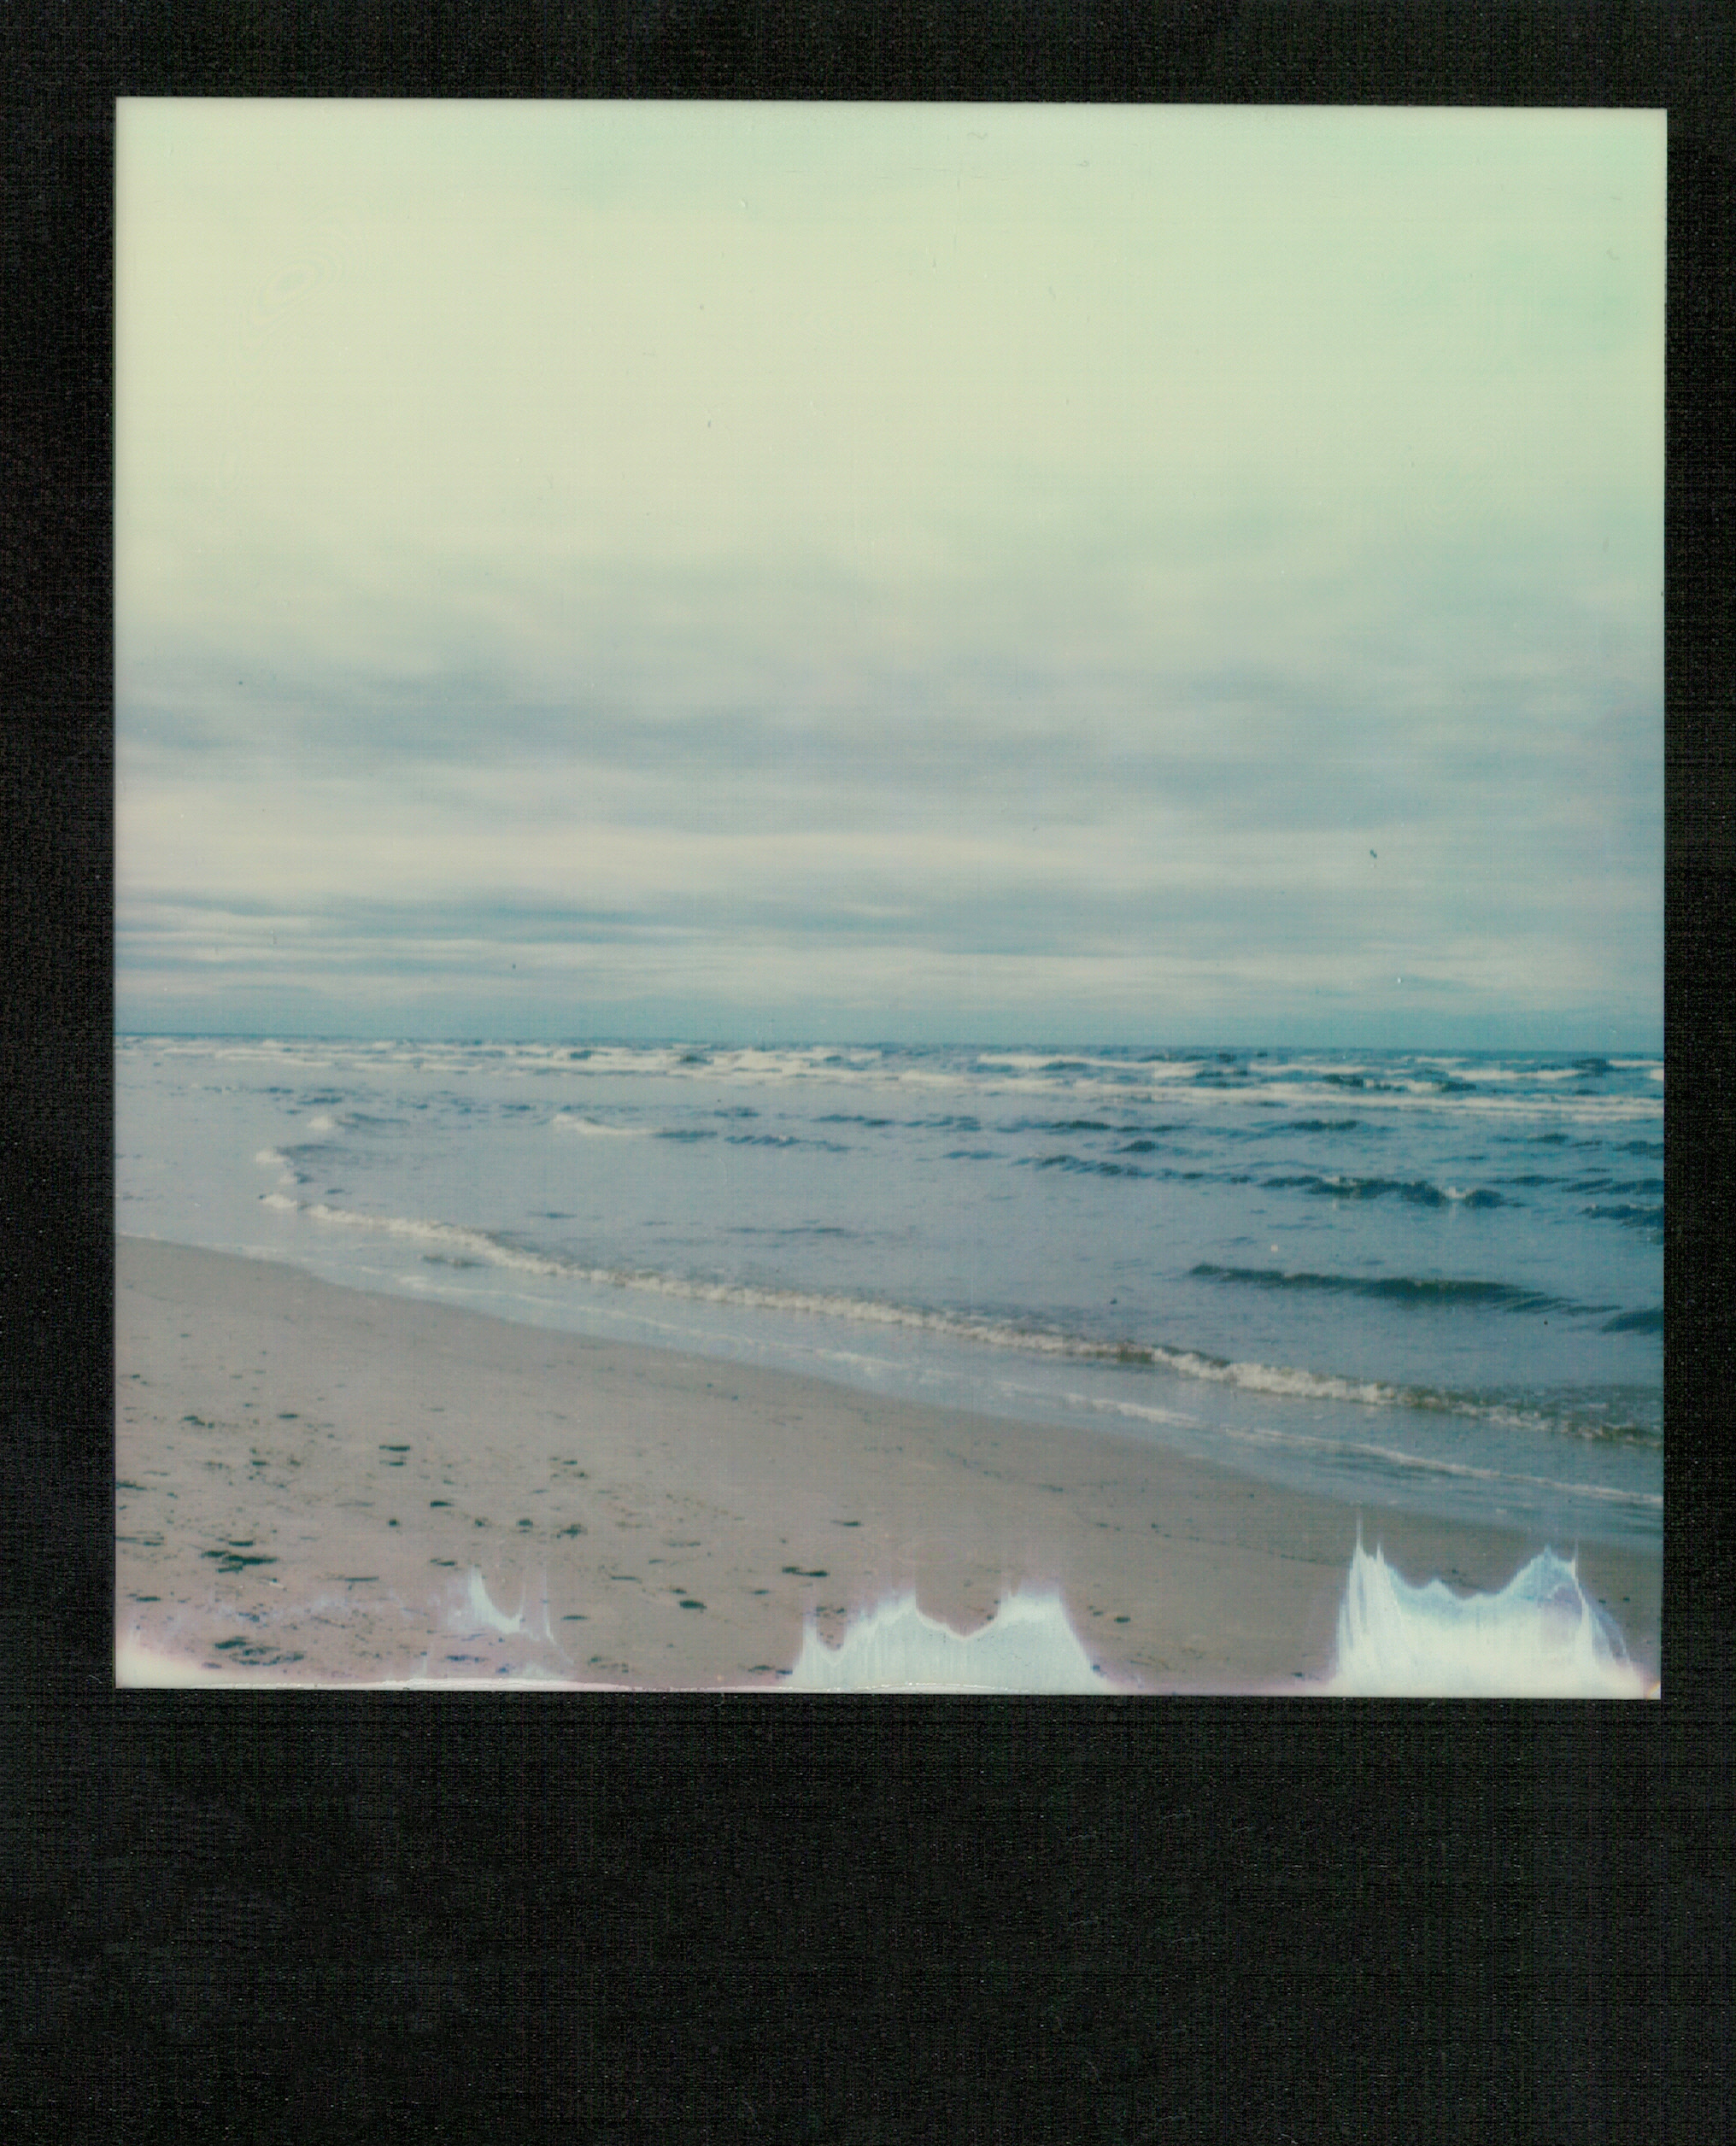 Nothing but a sea | Polaroid SX70 | Alpha 1 | Impossible Color  | ND filter | Ioana Taut